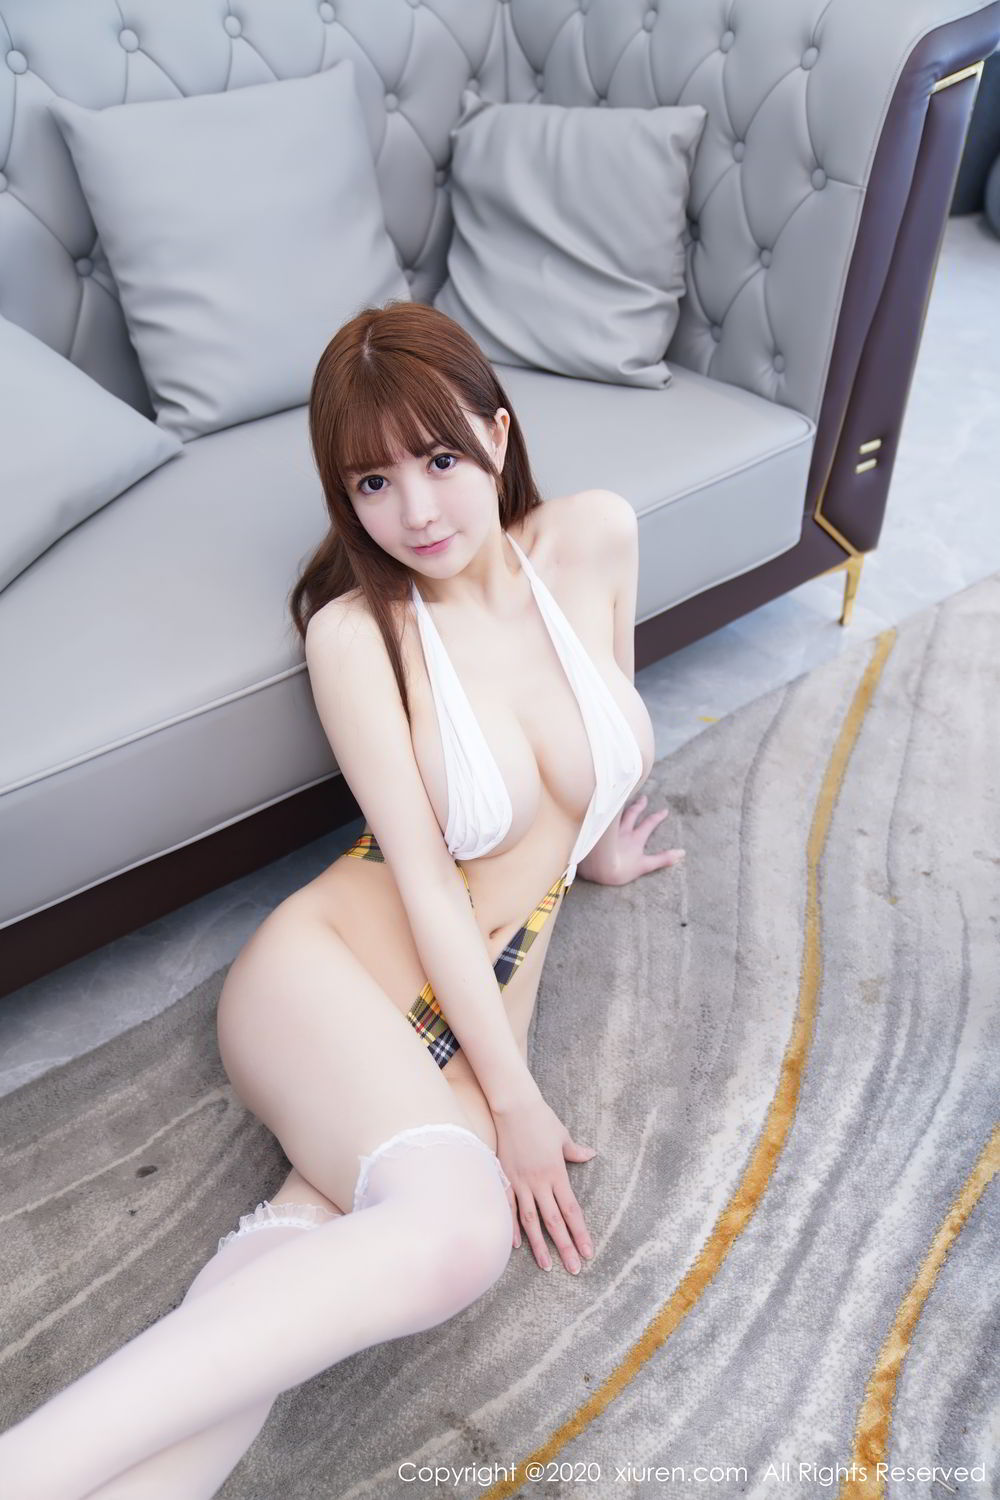 [XiuRen] Vol.2115 Uu Jiang 33P, Baby Face Big Boobs, Cute, UU Jiang, Xiuren